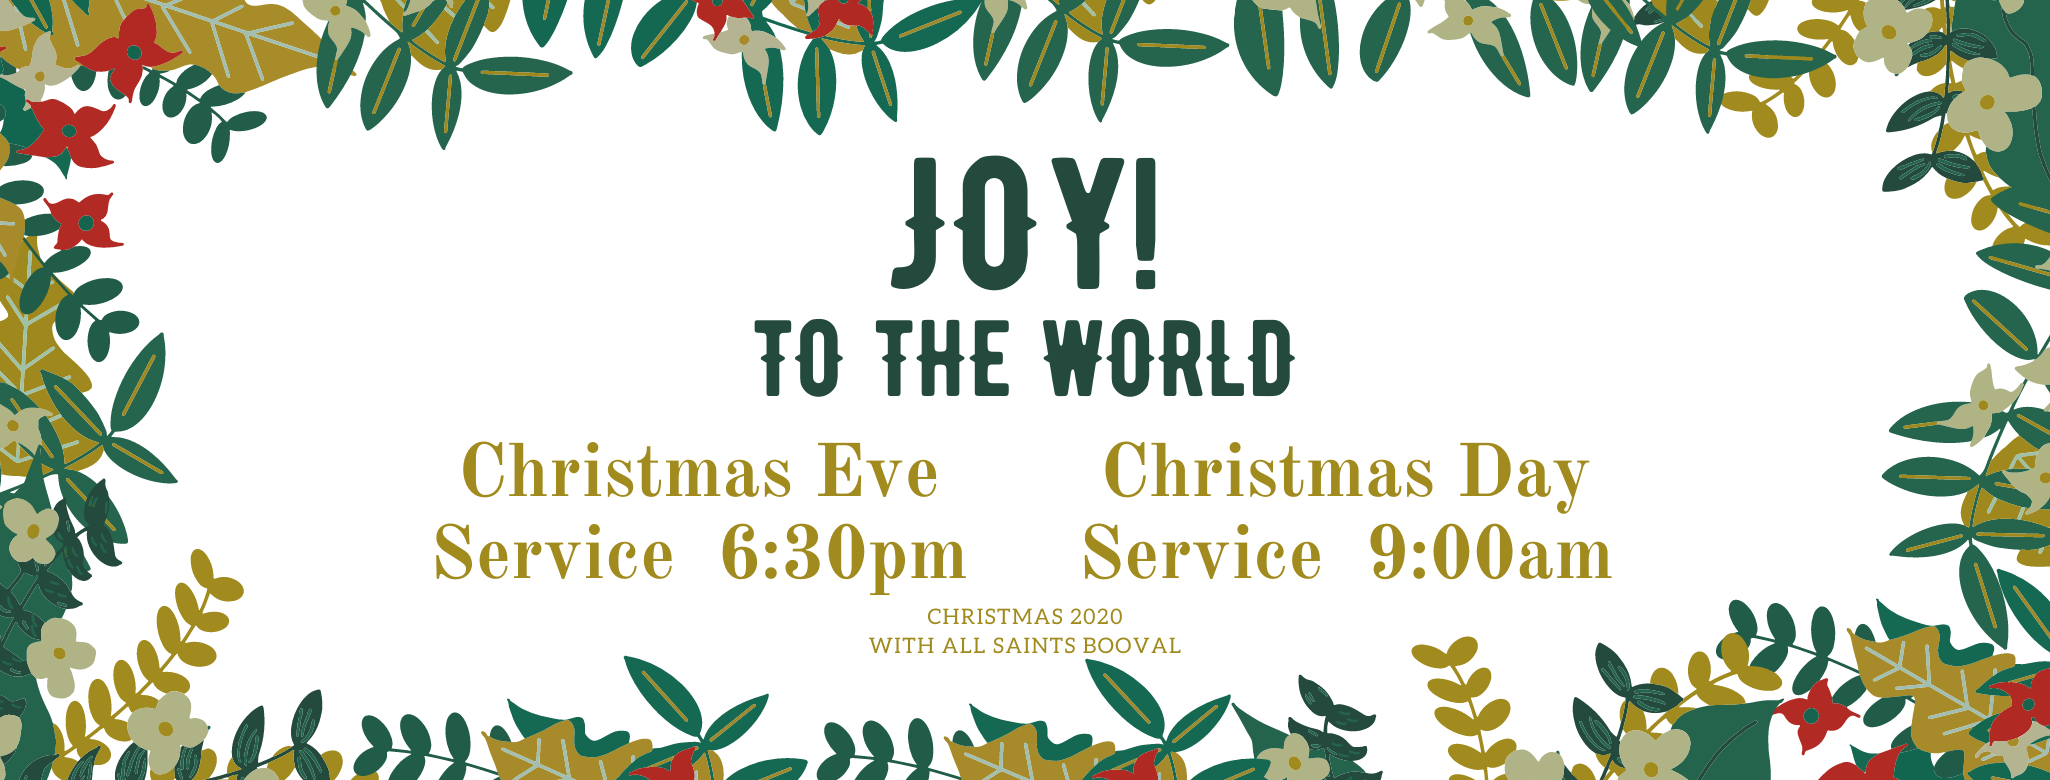 JOY! TO THE WORLD (7)